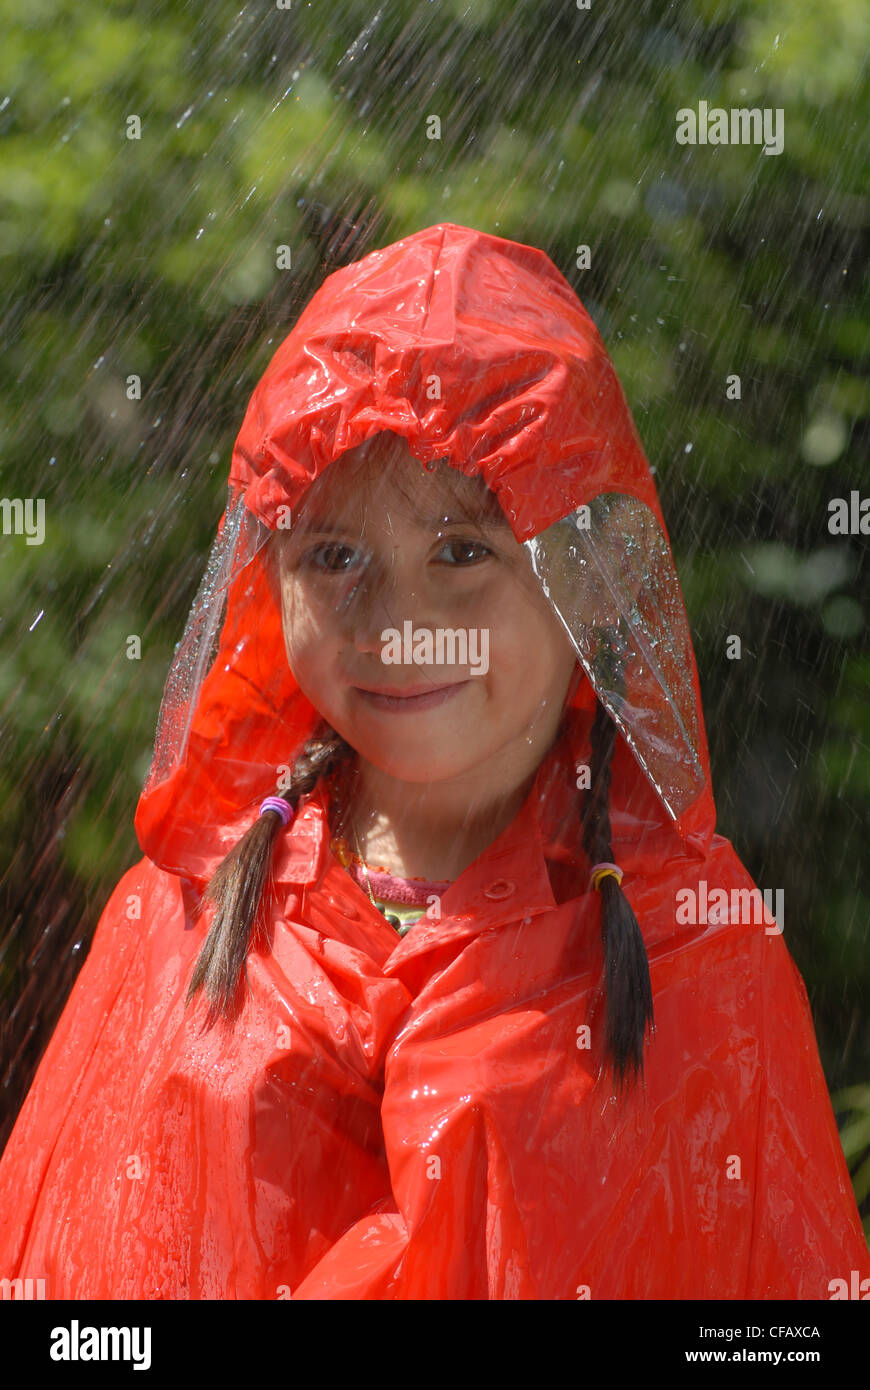 Rains, wetness, water, Autumn, fall, child, girl, orange, weather, rain protection - Stock Image